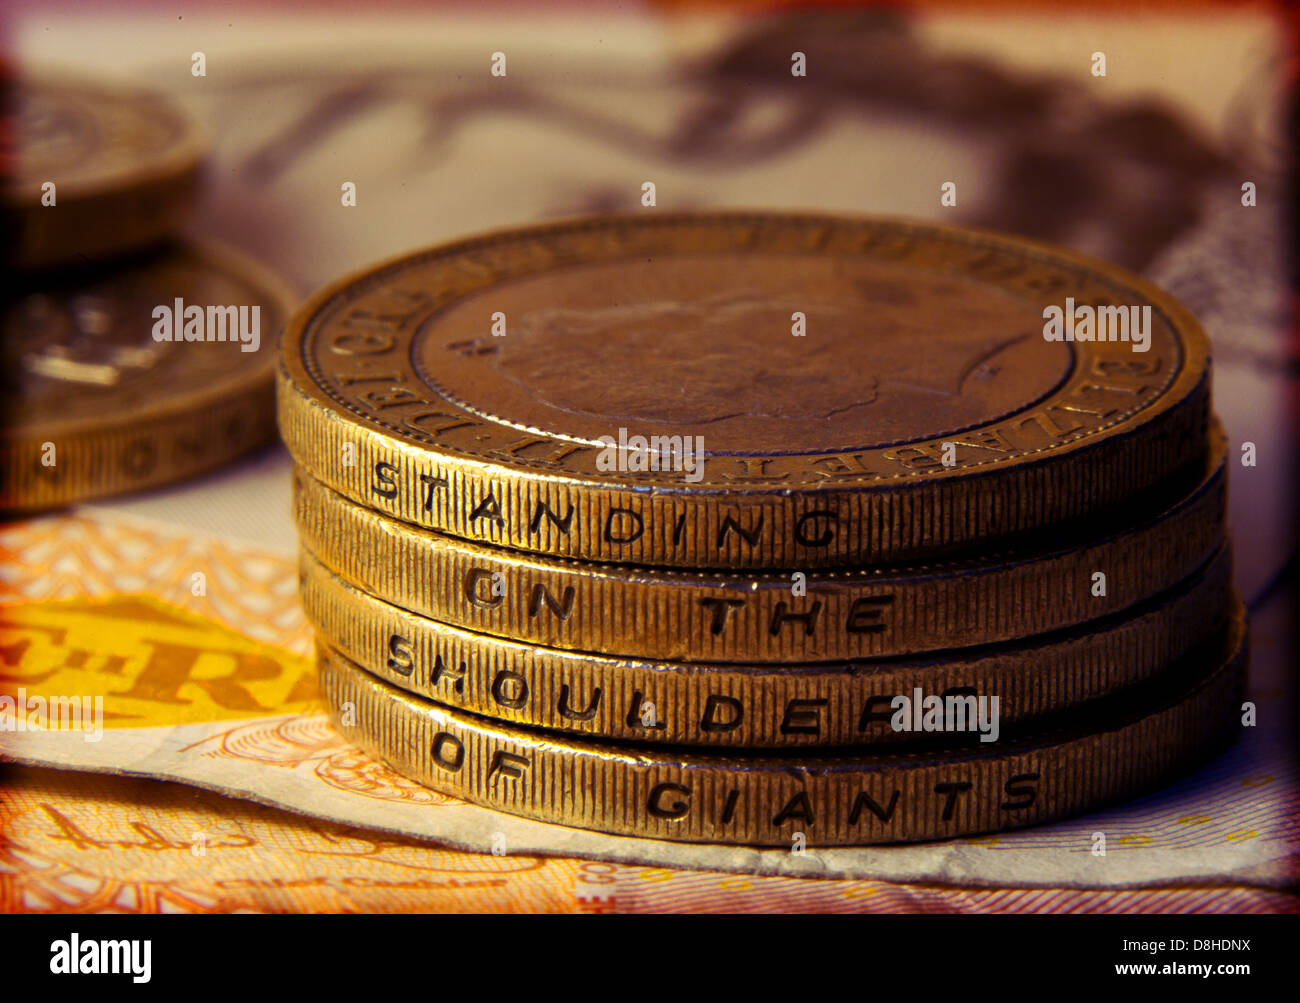 on,the,shoulder,of,giants,oasis,sterling,album,CD,title,brown,coins,fourth,studio,album,by,English,rock,band,Manchester,britain,2,quotation,of,Newton,four,coins,stacked,tower,on,10,pound,note,£,money,cash,loose,change,gotonysmith,Dwarfs,standing,on,the,shoulders,of,giants,Latin,nanos,gigantum,humeris,insidentes,is,a,Western,metaphor,with,a,contemporary,interpretation,meaning,Buy,Pictures,of,Buy,Images,Of,Its,most,familiar,expression,is,found,in,the,letters,of,Isaac,Newton,one,who,discovers,by,building,on,previous,discoveries,,,